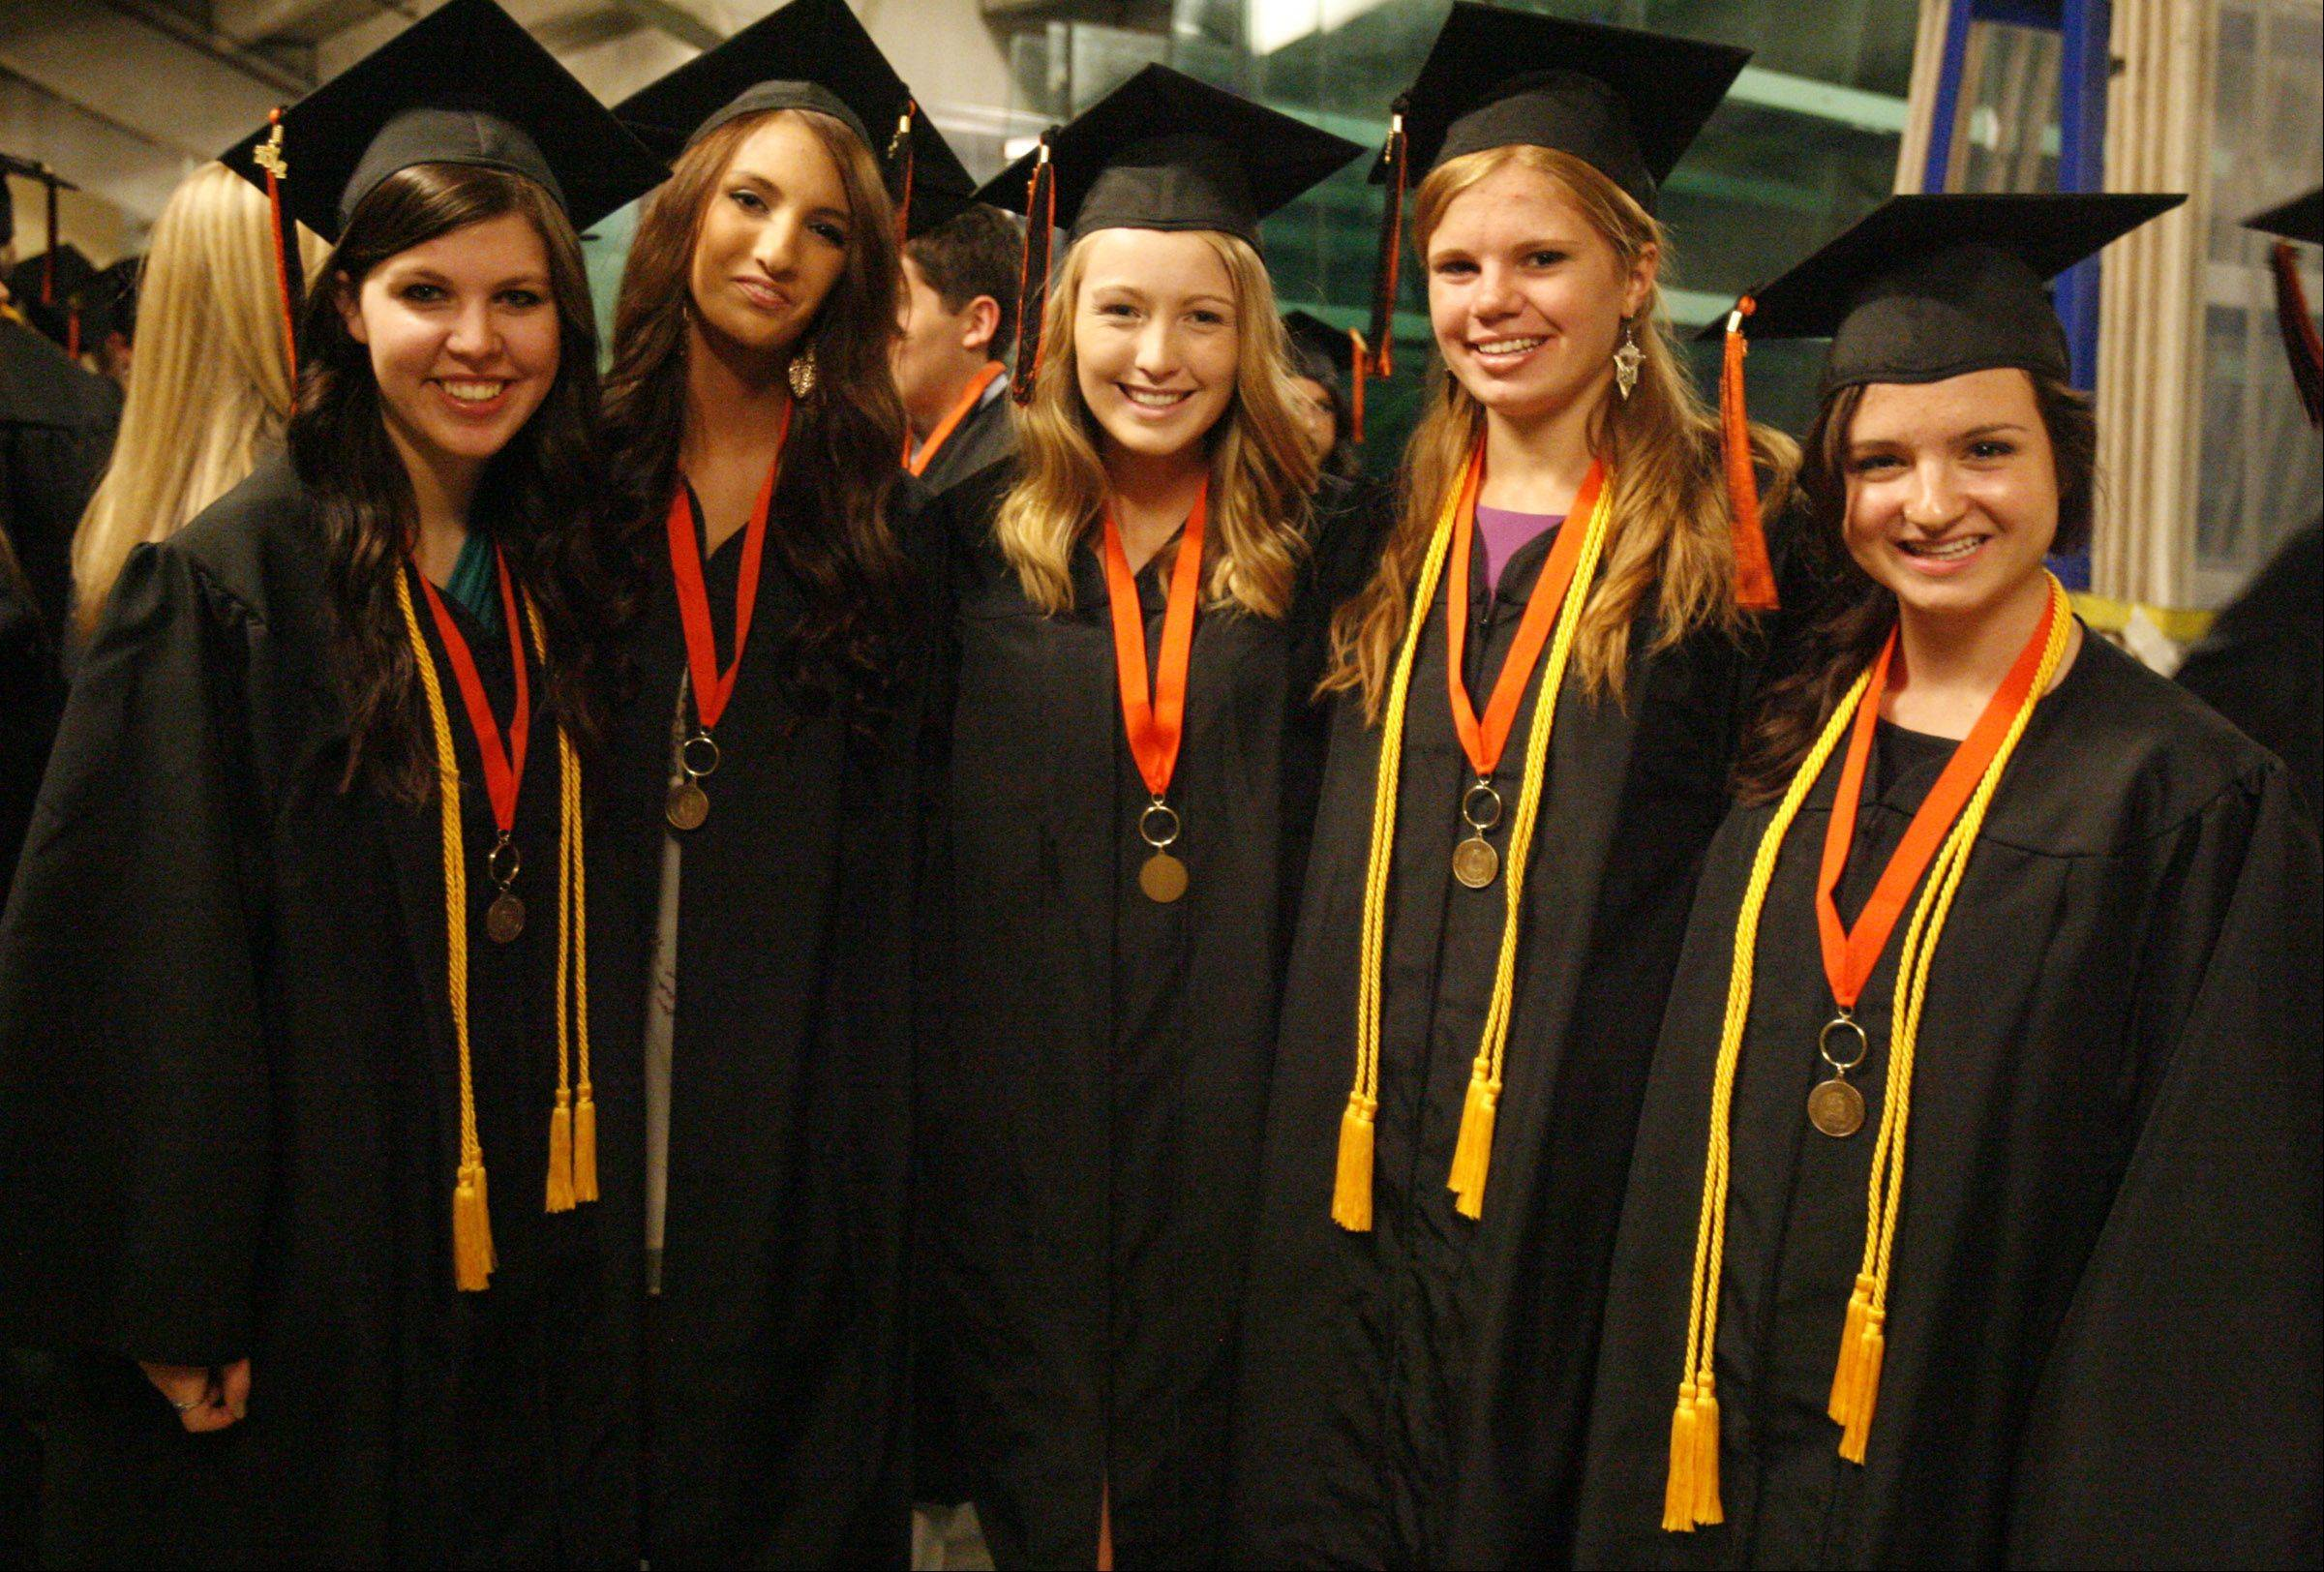 Libertyville High School graduation on Friday, June 1 at the Sears Centre in Hoffman Estates.